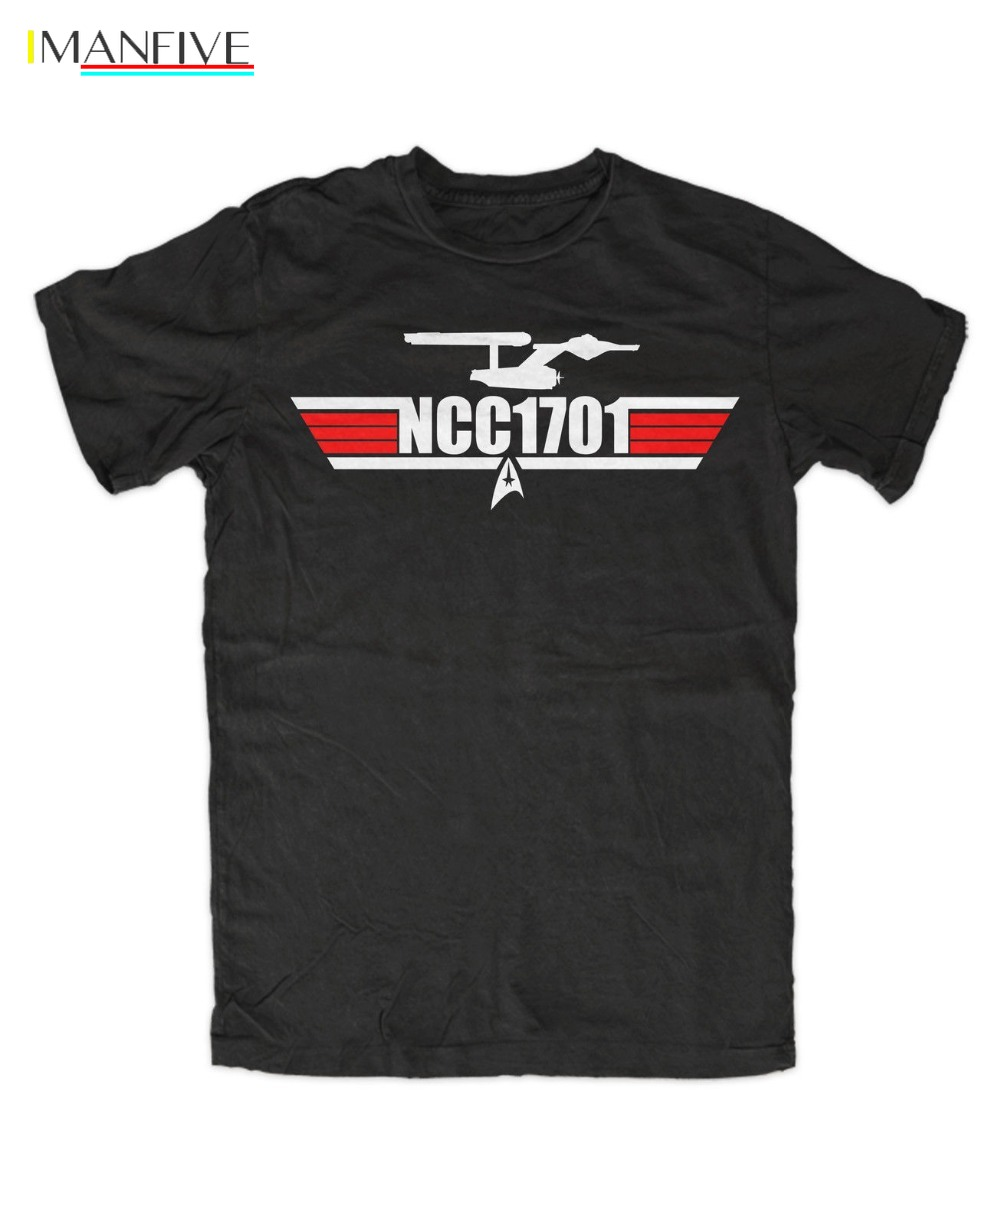 2019 Summer style Fashion NCC-1701 T-Shirt Star,Kult,Fun,Trek,Spock,Movie,Tv,Kirk,Picard,Uhura,Crusher Funny Tee shirt image